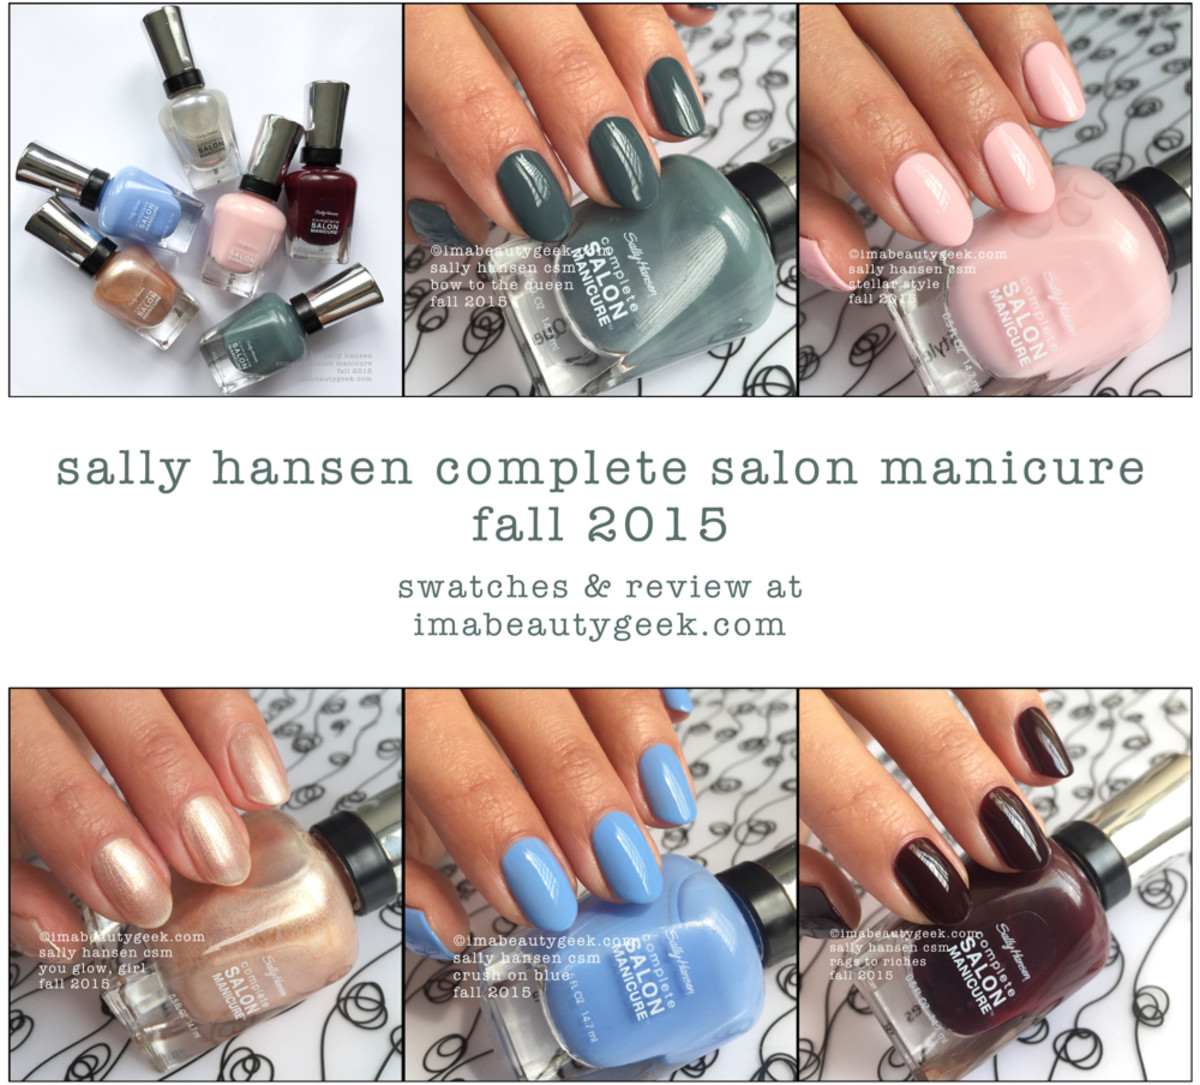 Sally Hansen Fall 2015 Complete Salon Manicure - Version 2